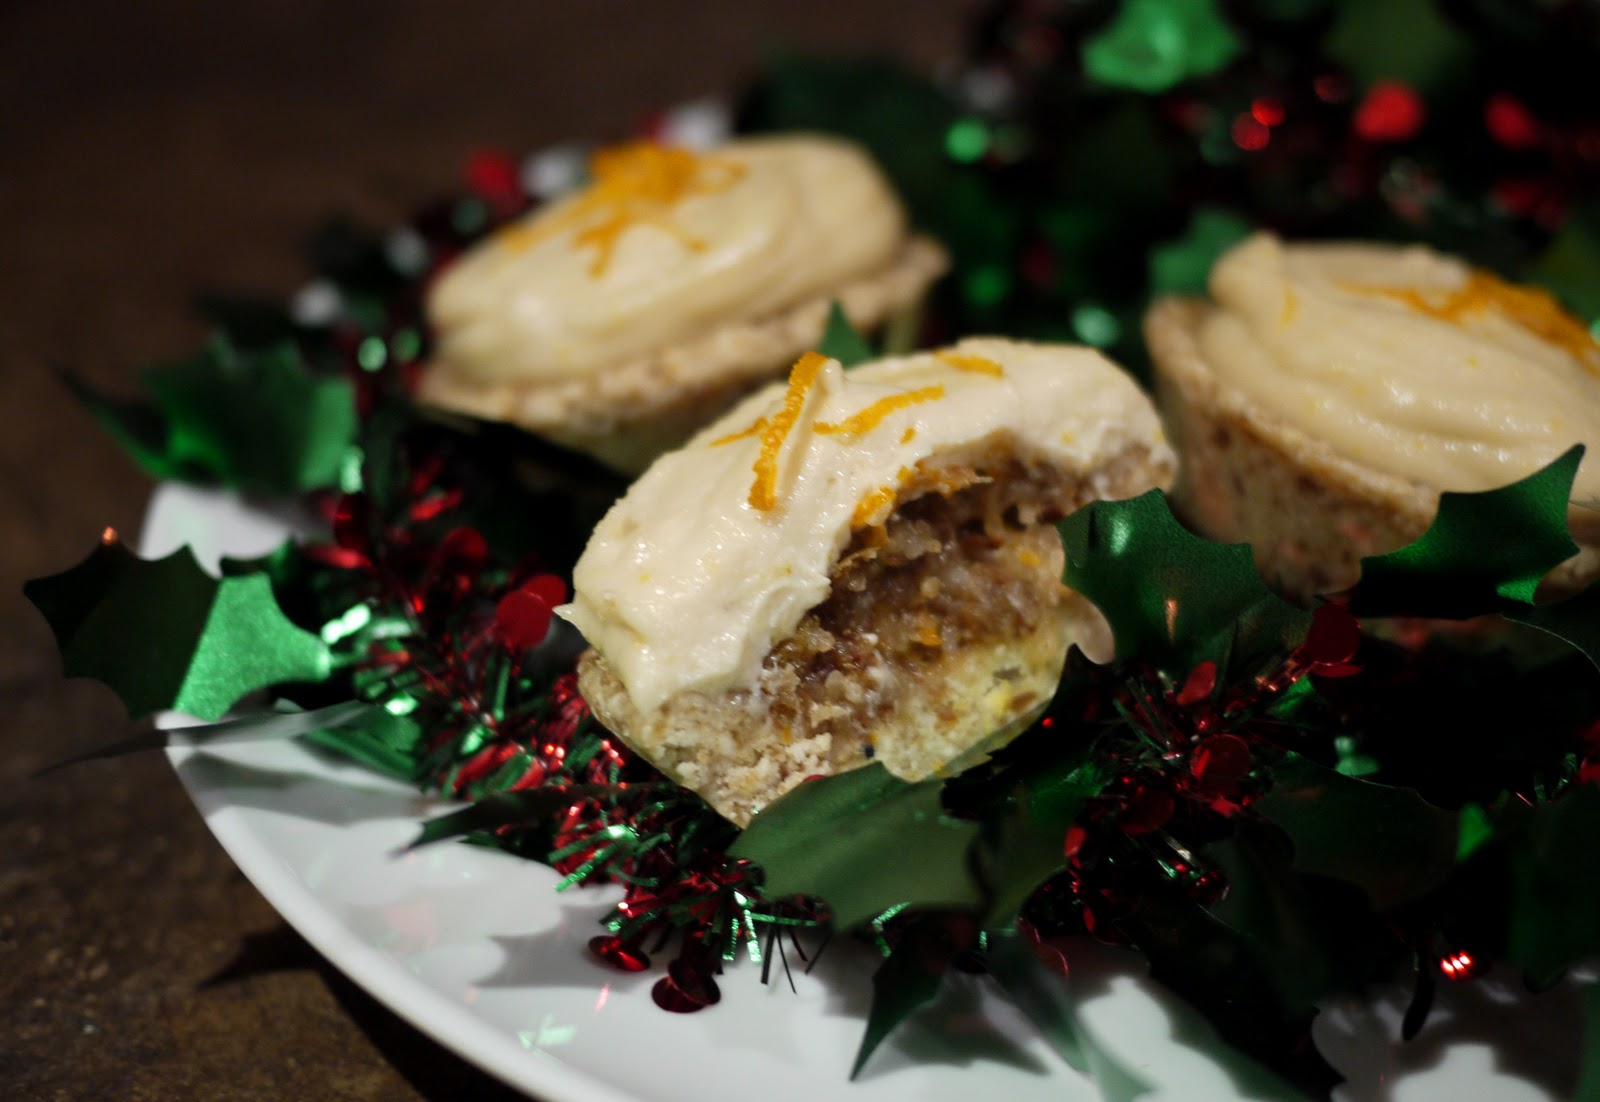 Christmas in the raw no dehydrator needed better raw ok maybe these are not exactly elliots mince pies but he did eat all the ones in the photo and they have his seal of approval all over forumfinder Choice Image